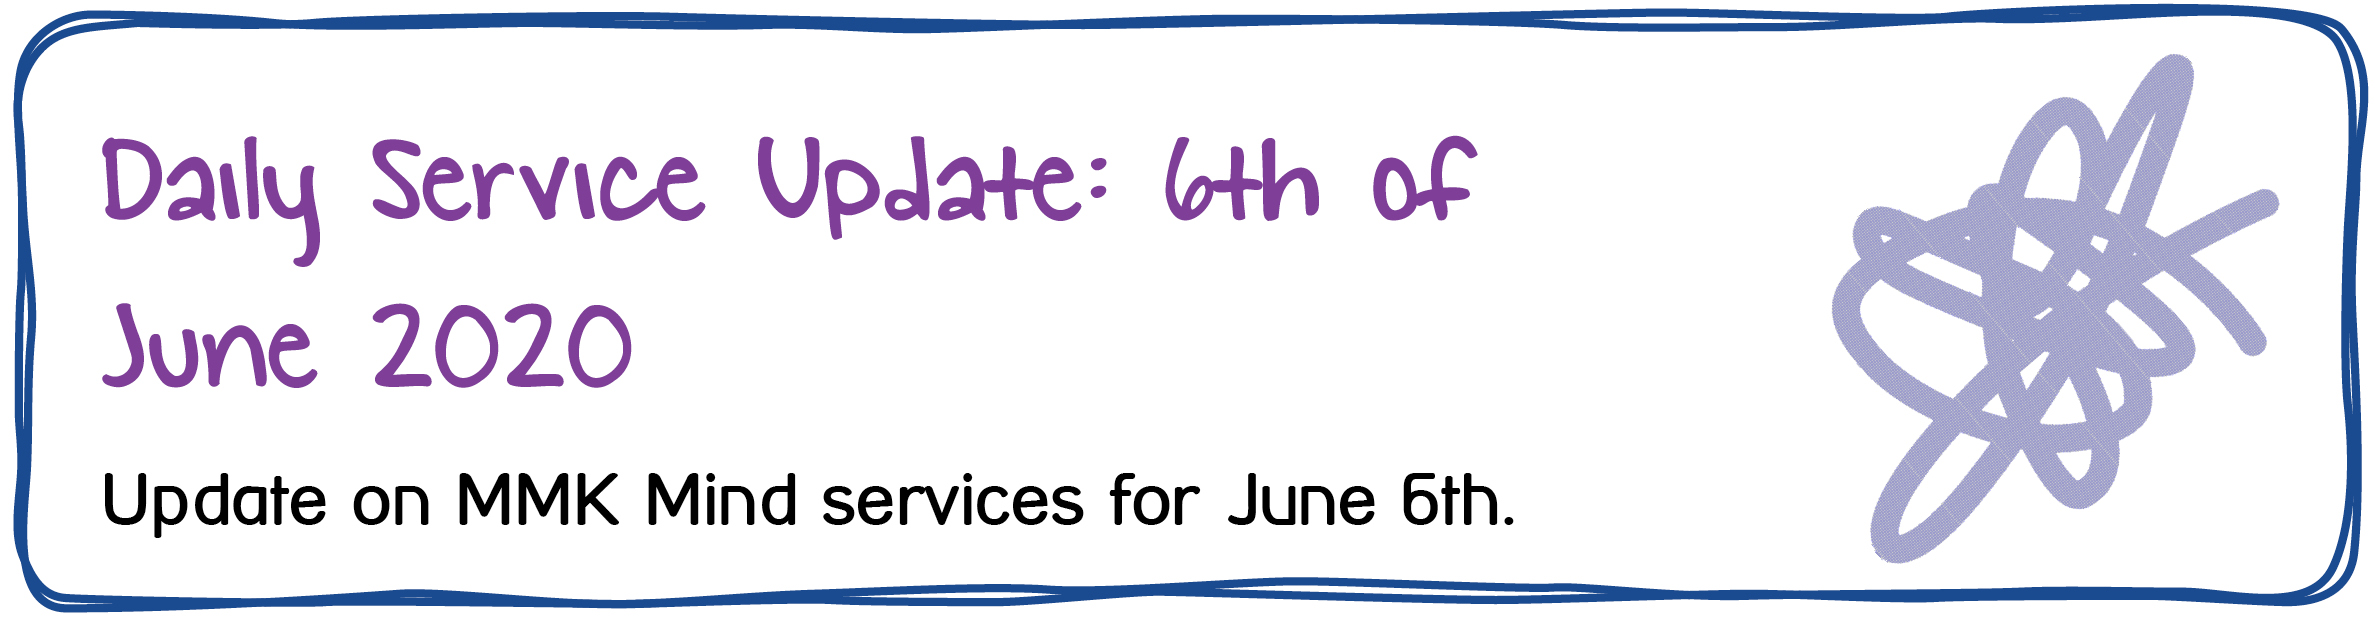 Daily Service Update: 6th of June 2020. Update on MMK Mind services for June 6th.